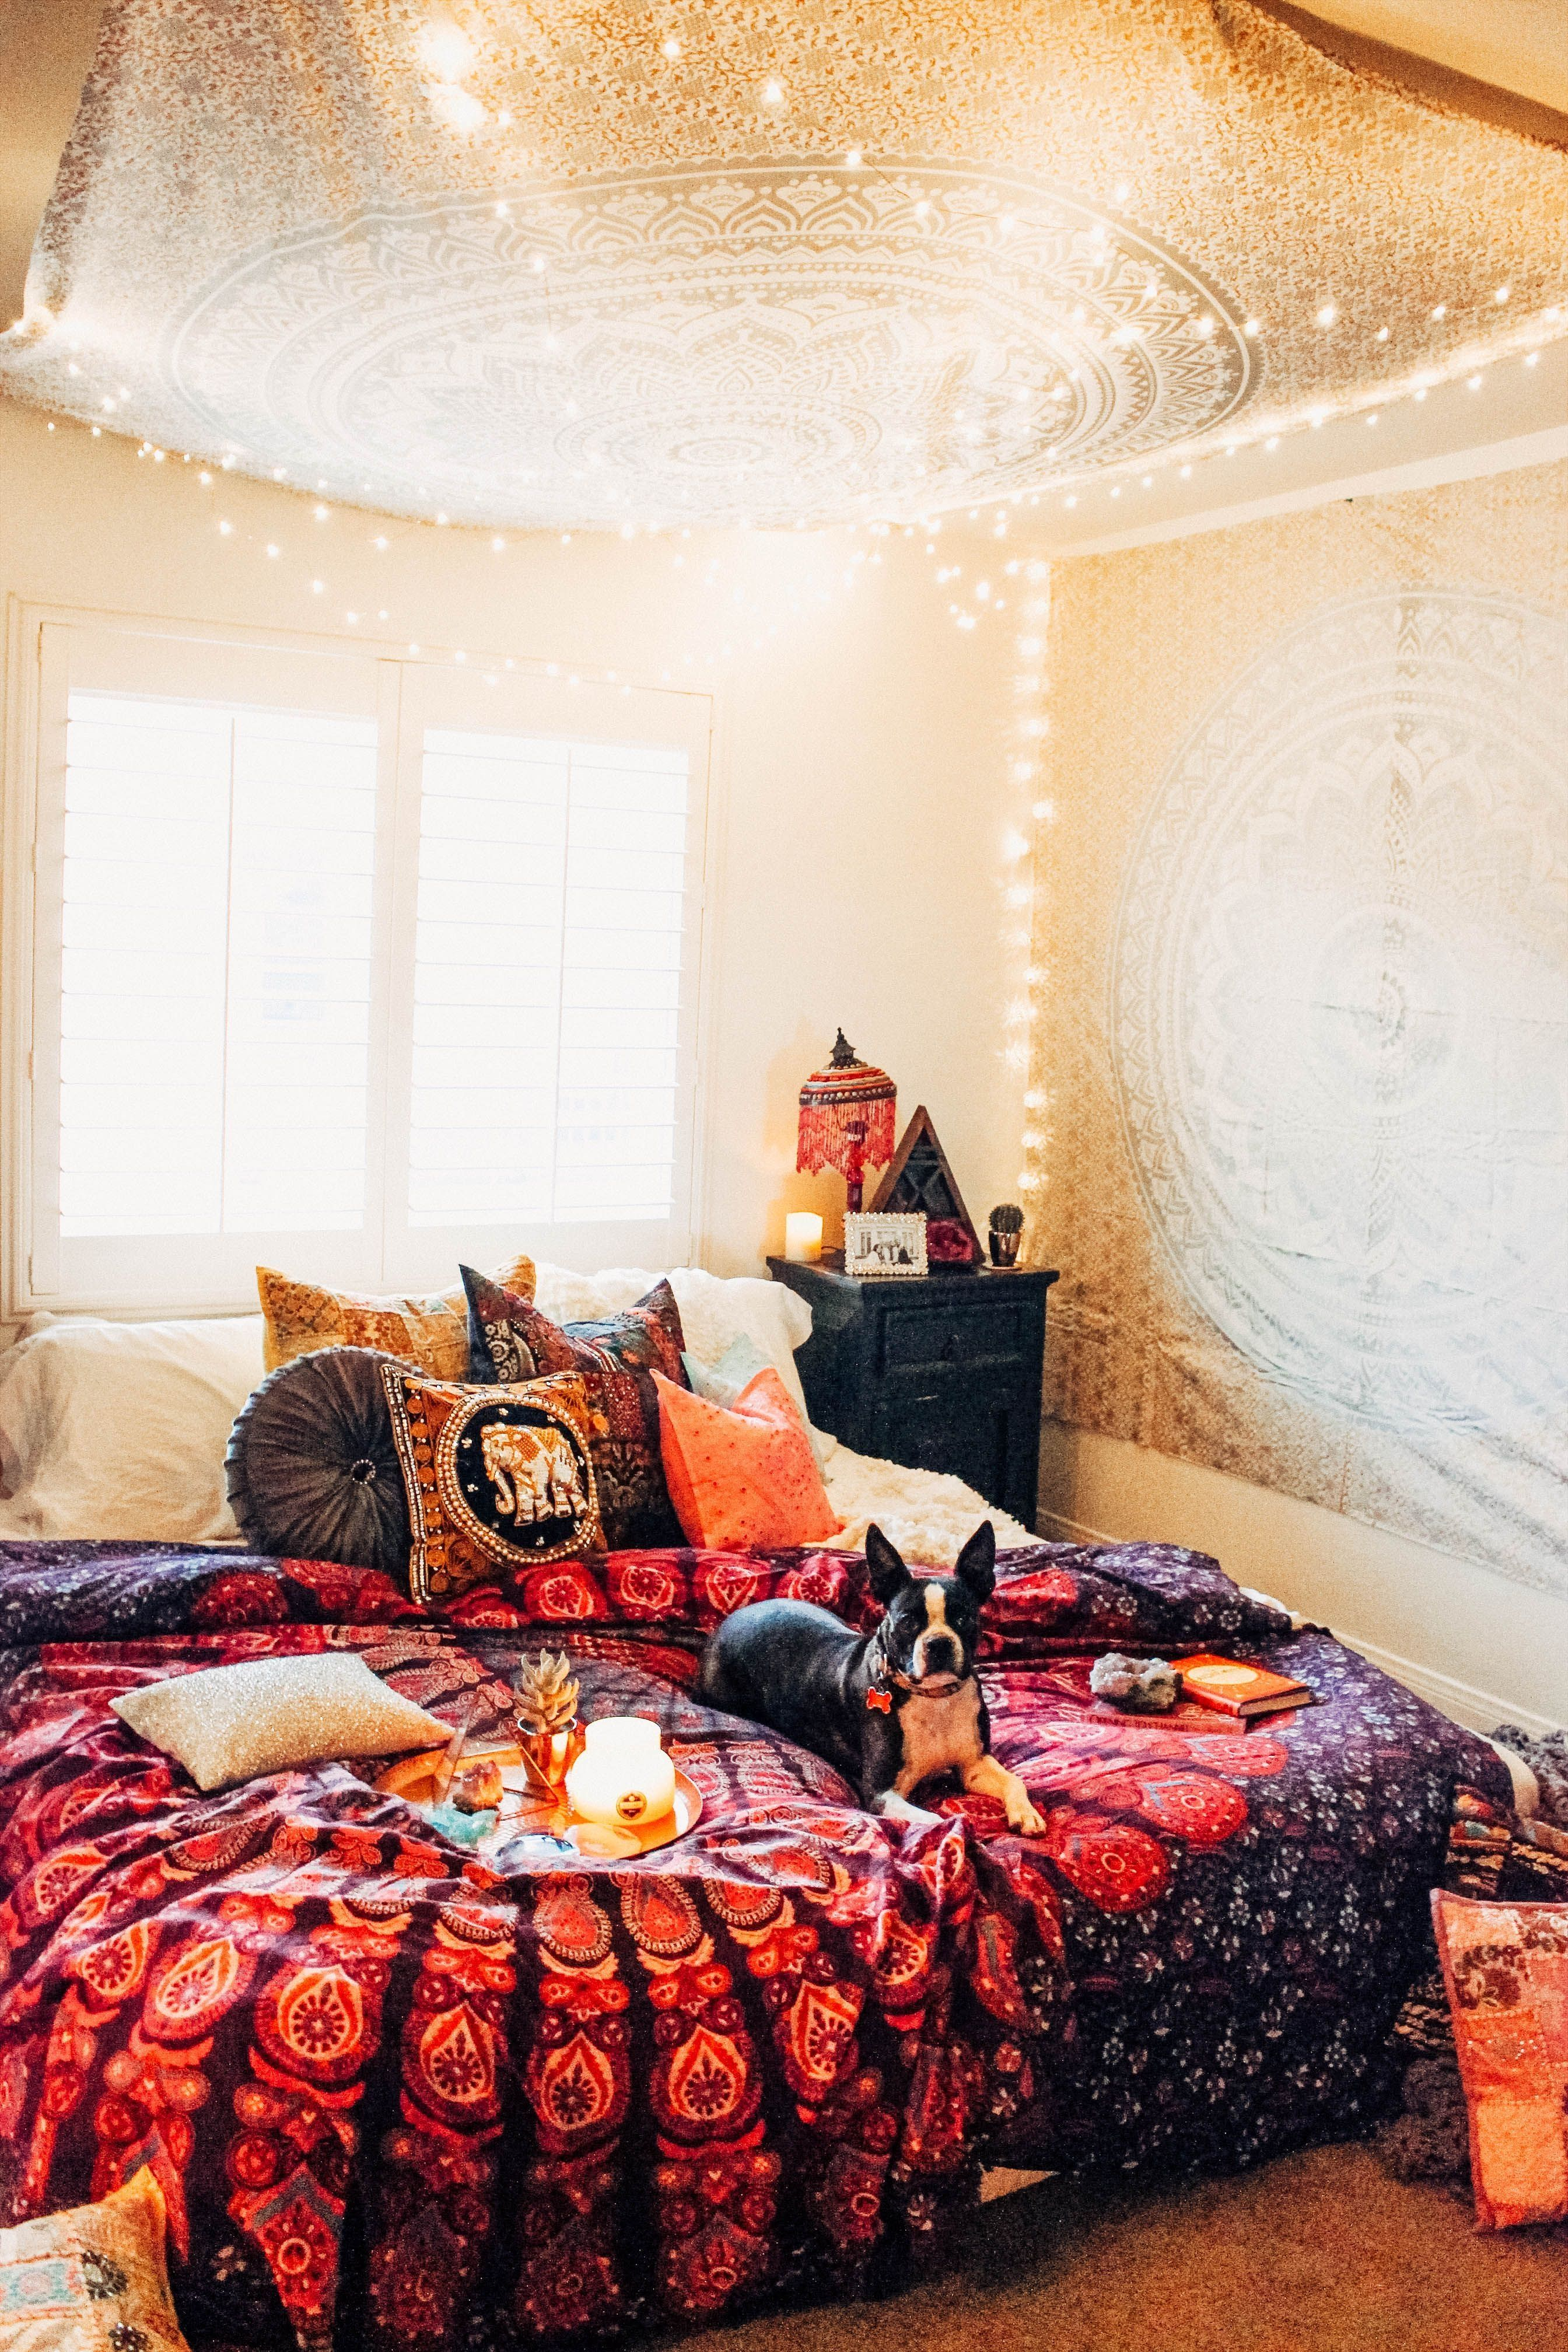 52 Dorm Room Essentials Create A Stylish Space For Lounging